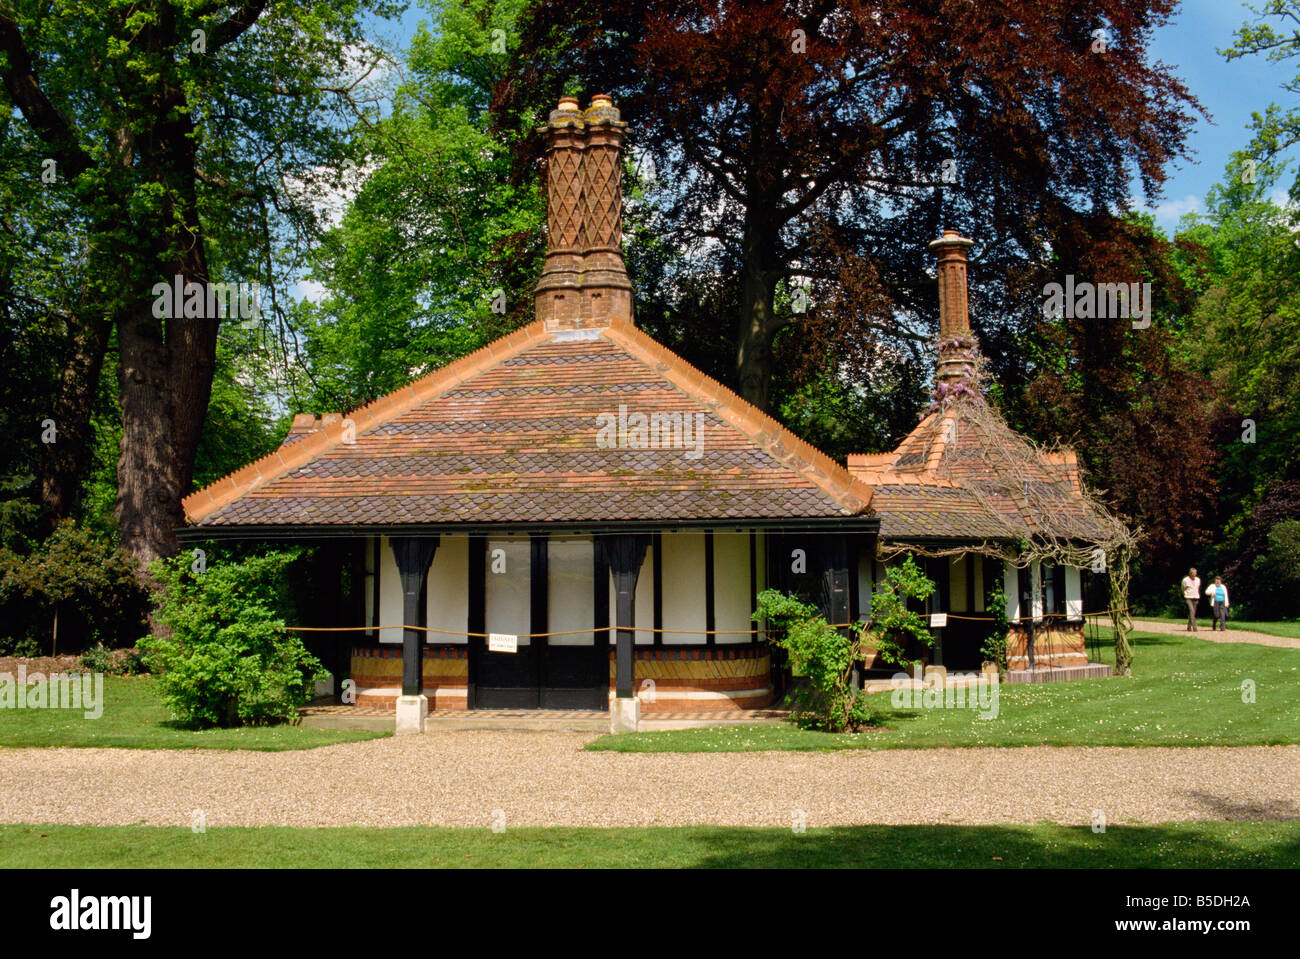 Frogmore Gardens resting place of many Royals Windsor Berkshire England United Kingdom Europe - Stock Image